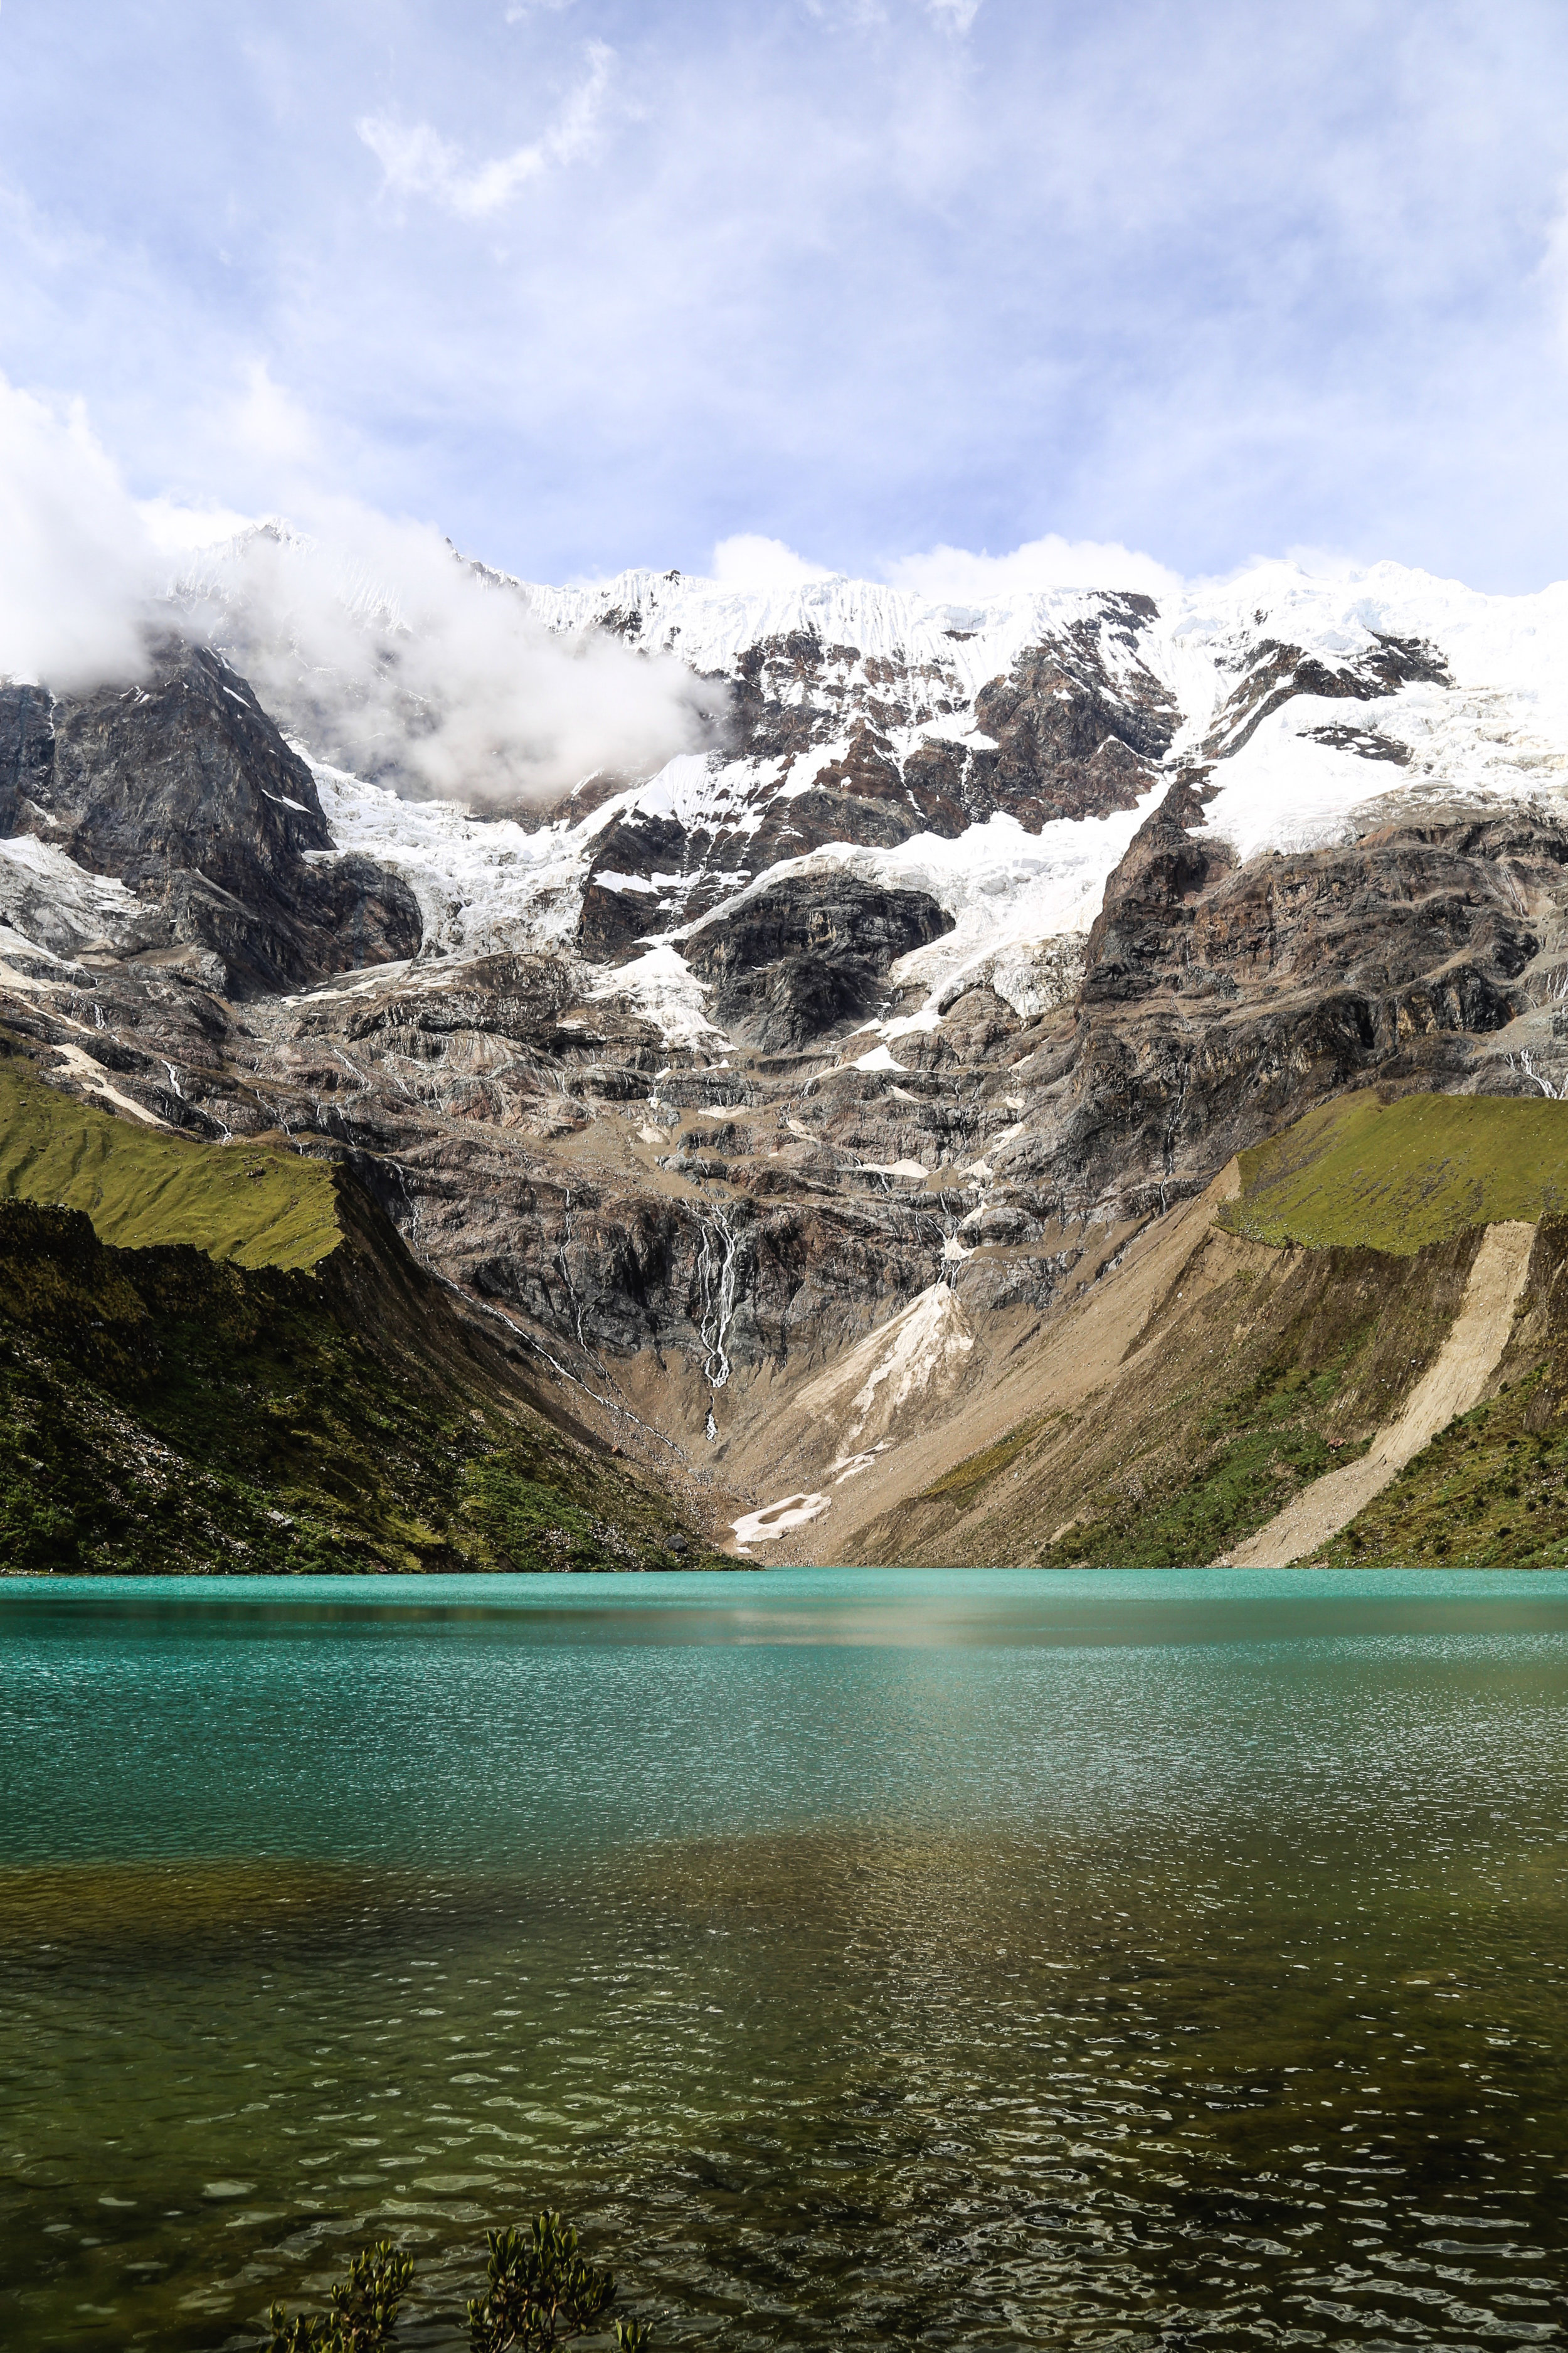 Everything you need to know about what the Salkantay Trek to Machu Picchu is really like! www.wheatfoot.com